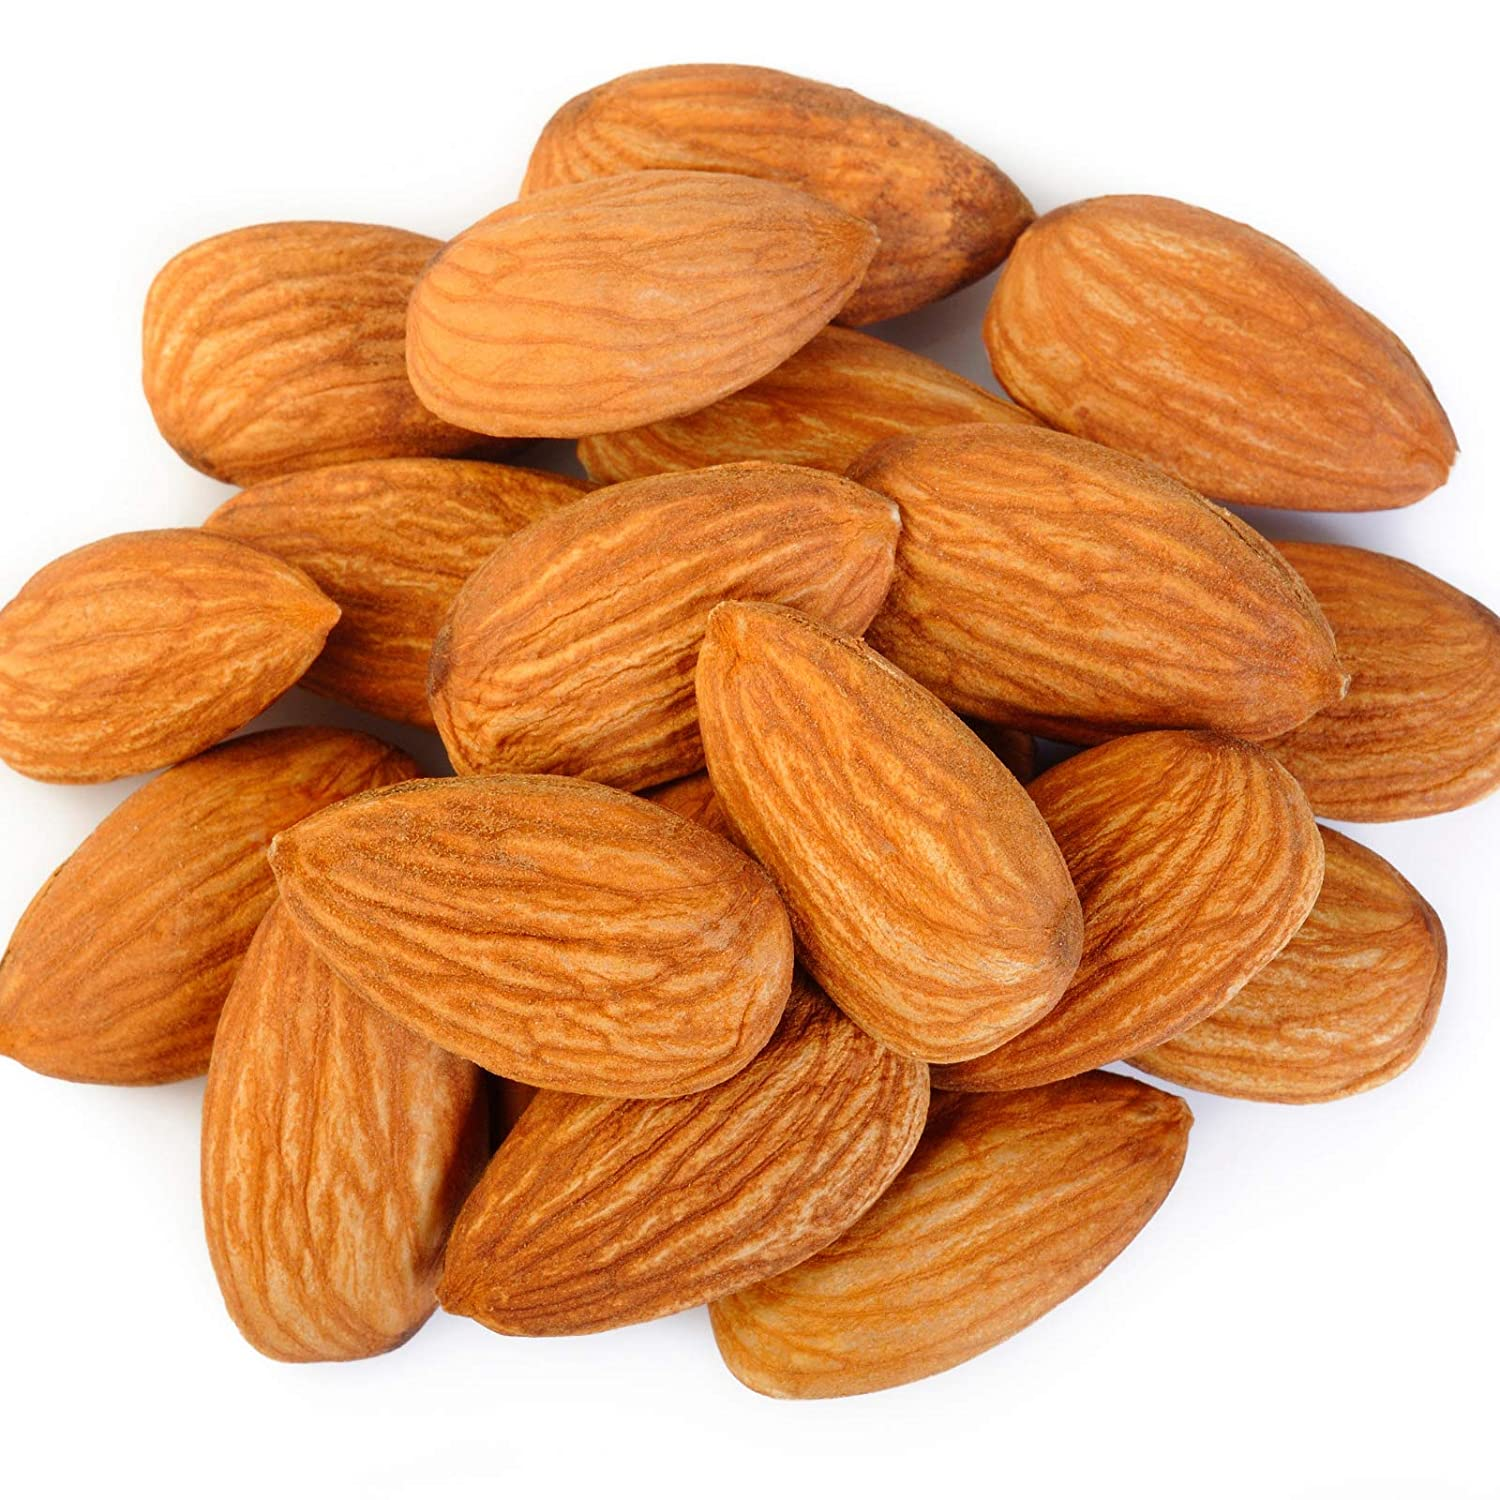 Gourmet Fees free Whole Raw Almonds by Its Bulk 5 Delish lbs 25% OFF